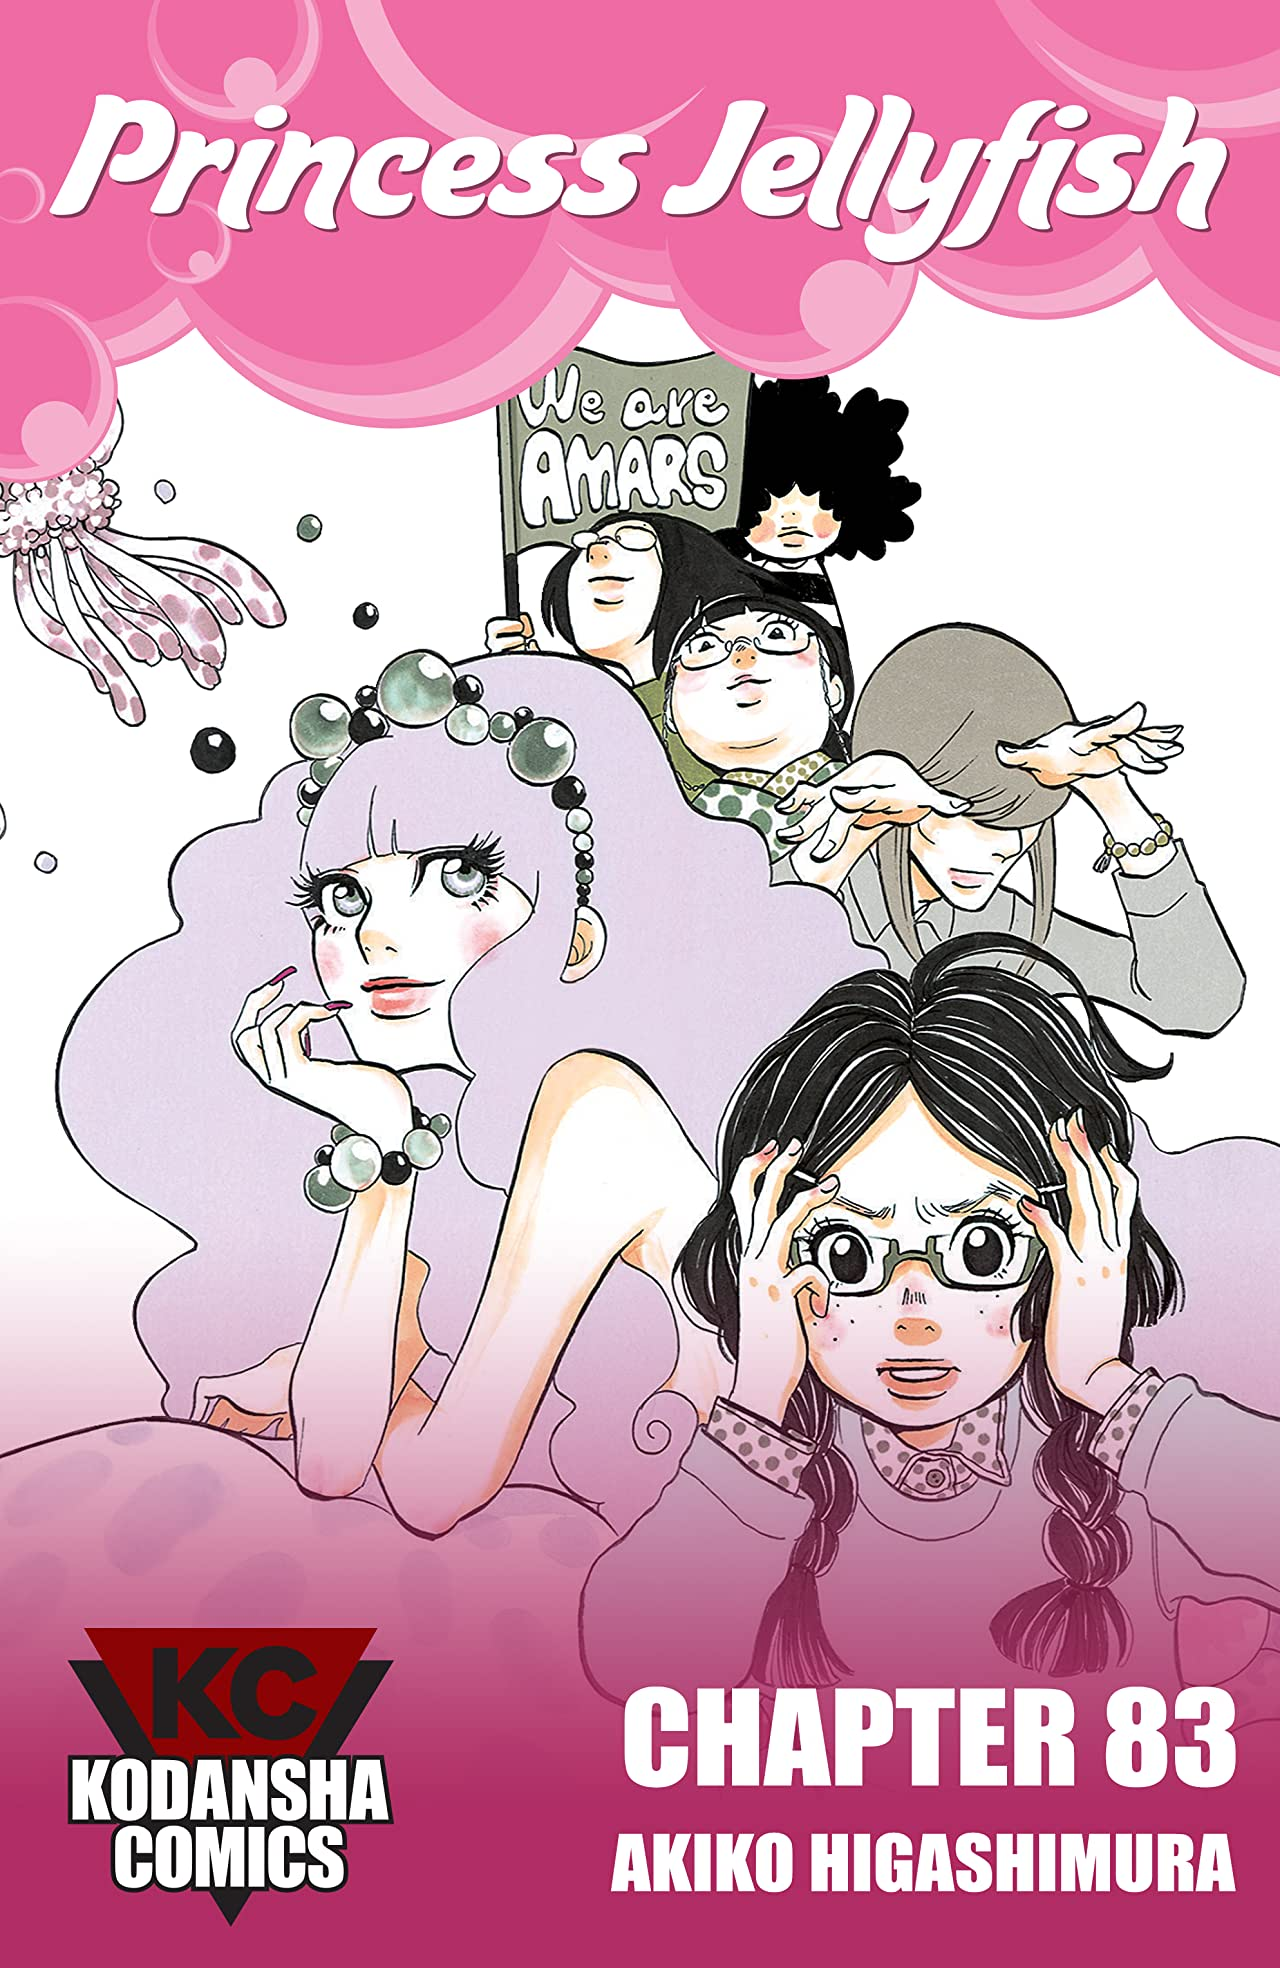 Princess Jellyfish #83